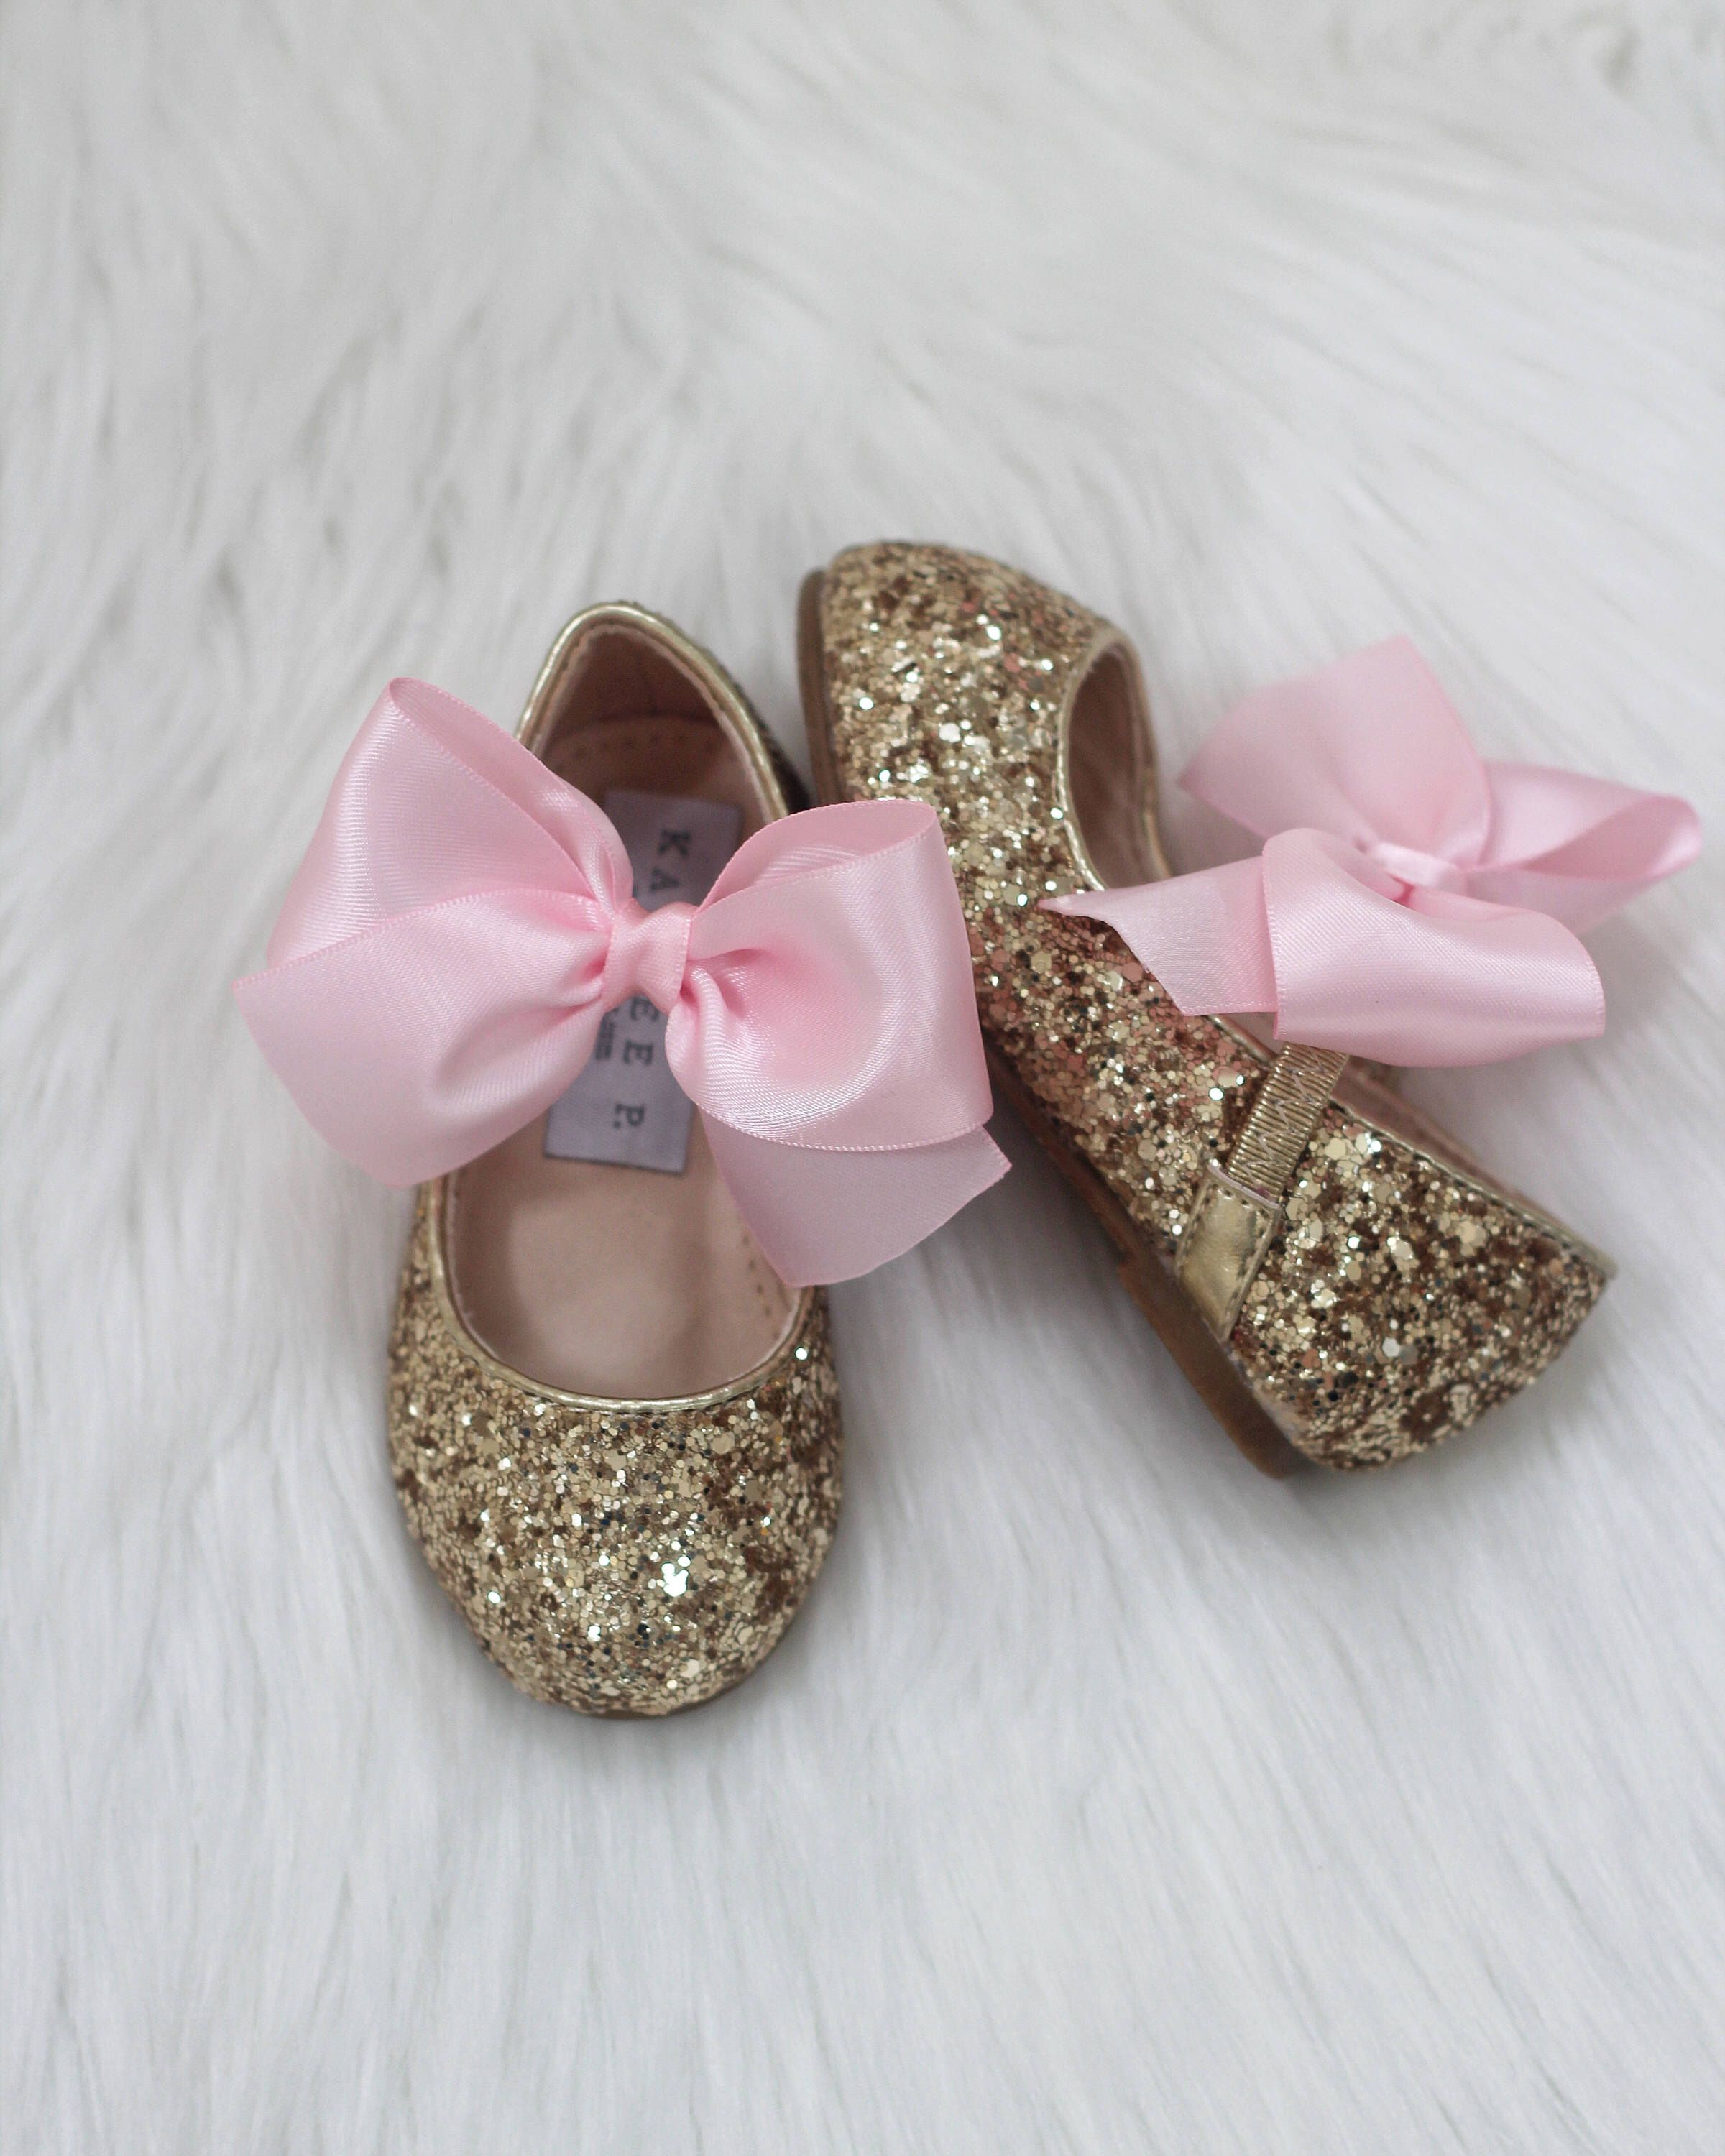 22f7f2e25982 FIRST BIRTHDAY SHOES - Silver   Gold Rock Glitter Maryjane with Pink Satin  ribbon bow - Girls Glitter Shoes